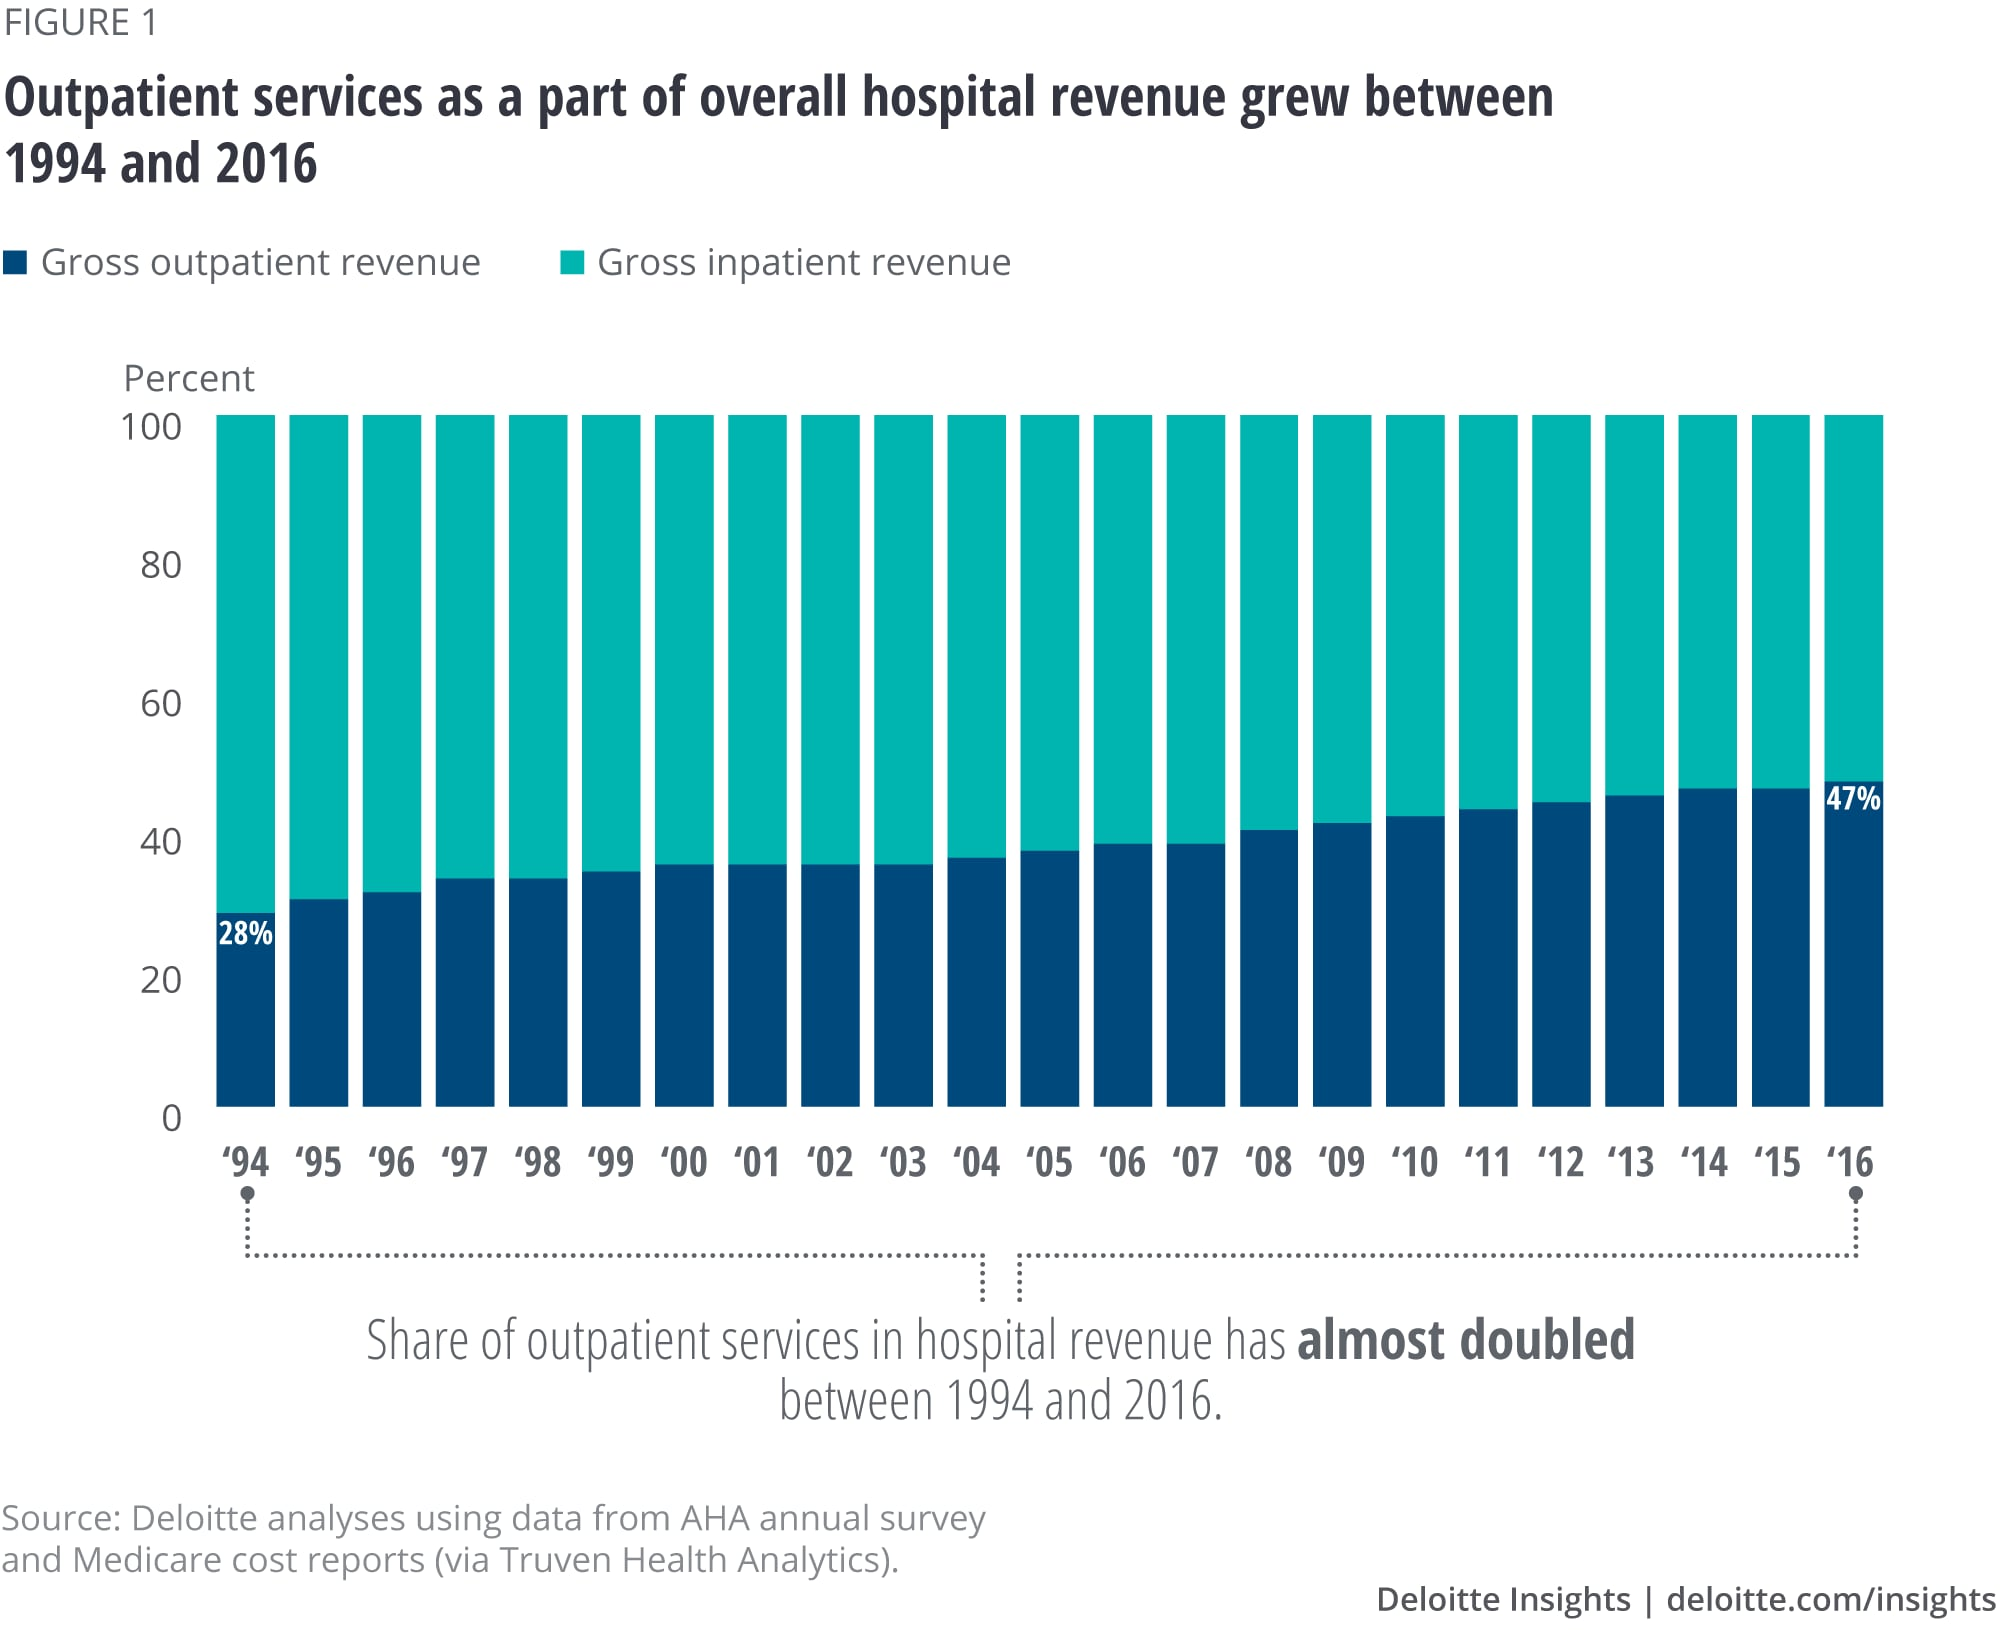 Outpatient services as a part of overall hospital revenue grew between 1994 and 2016